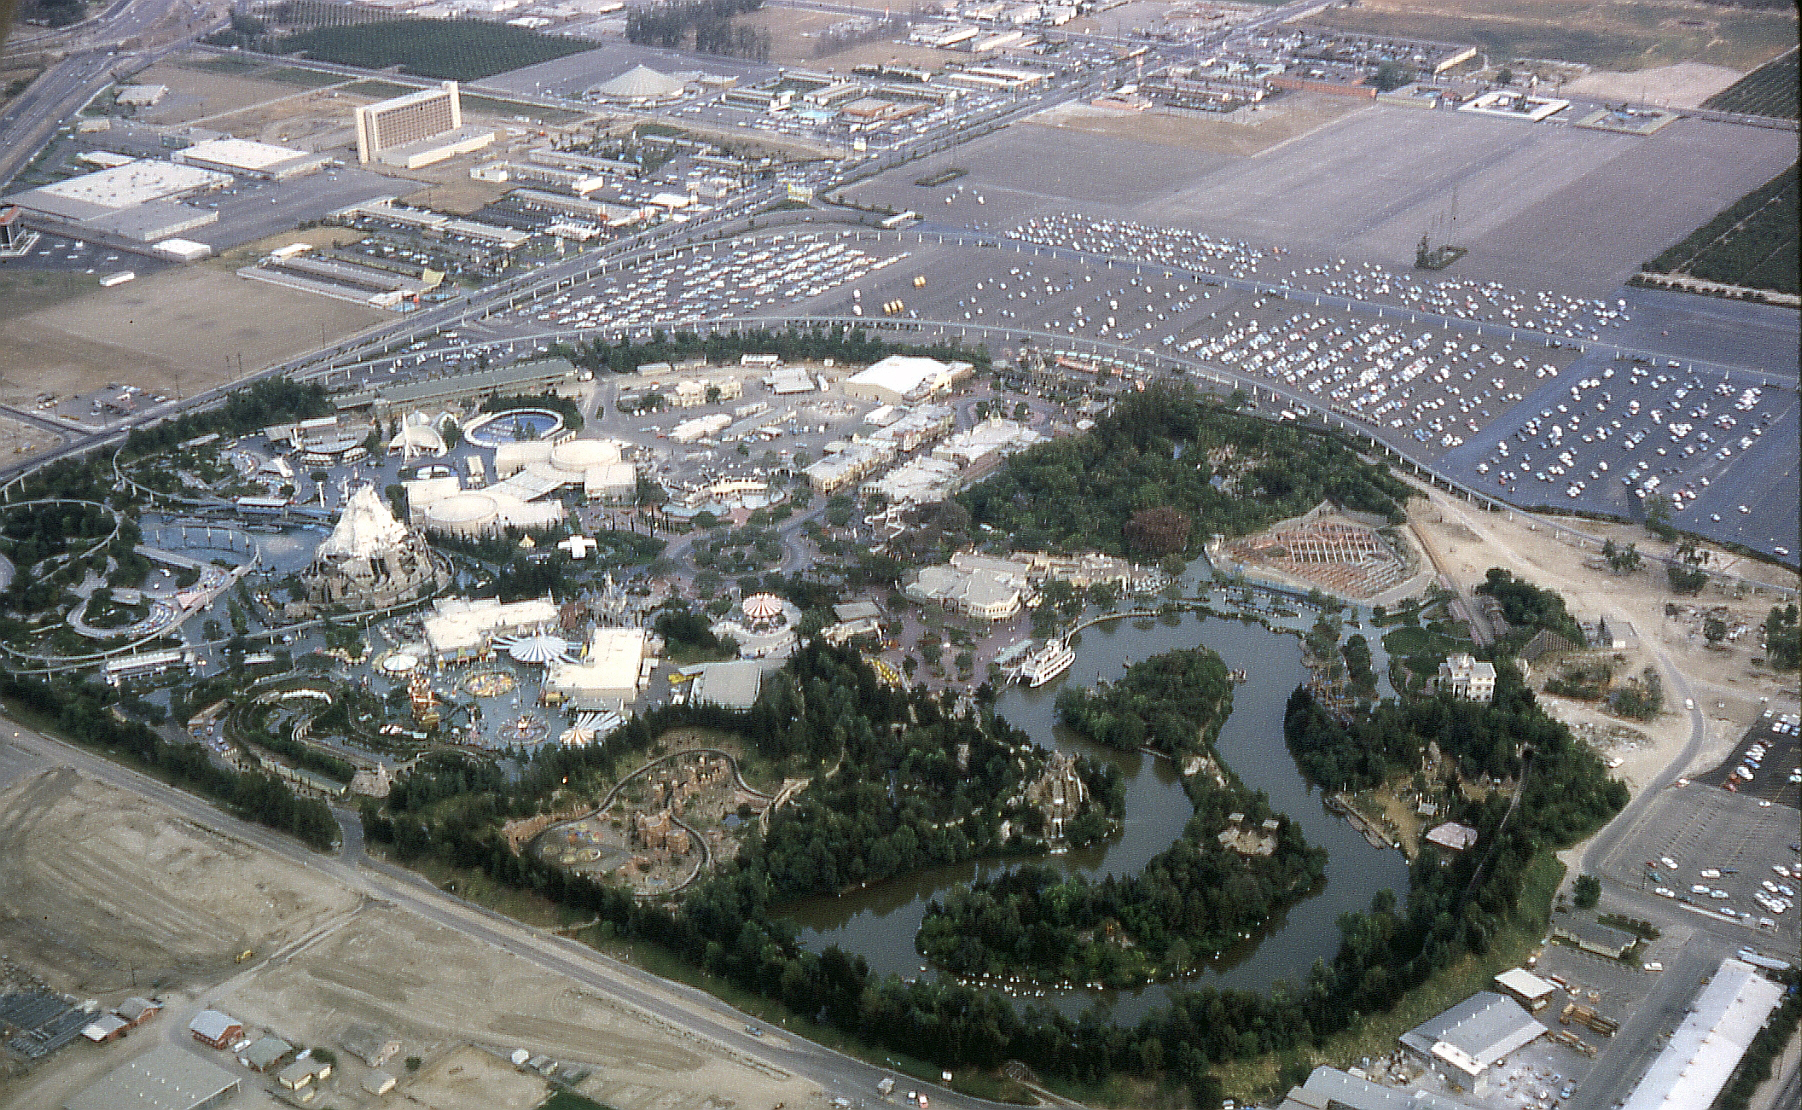 6308-anaheimdisneyland-nw-to-se-view